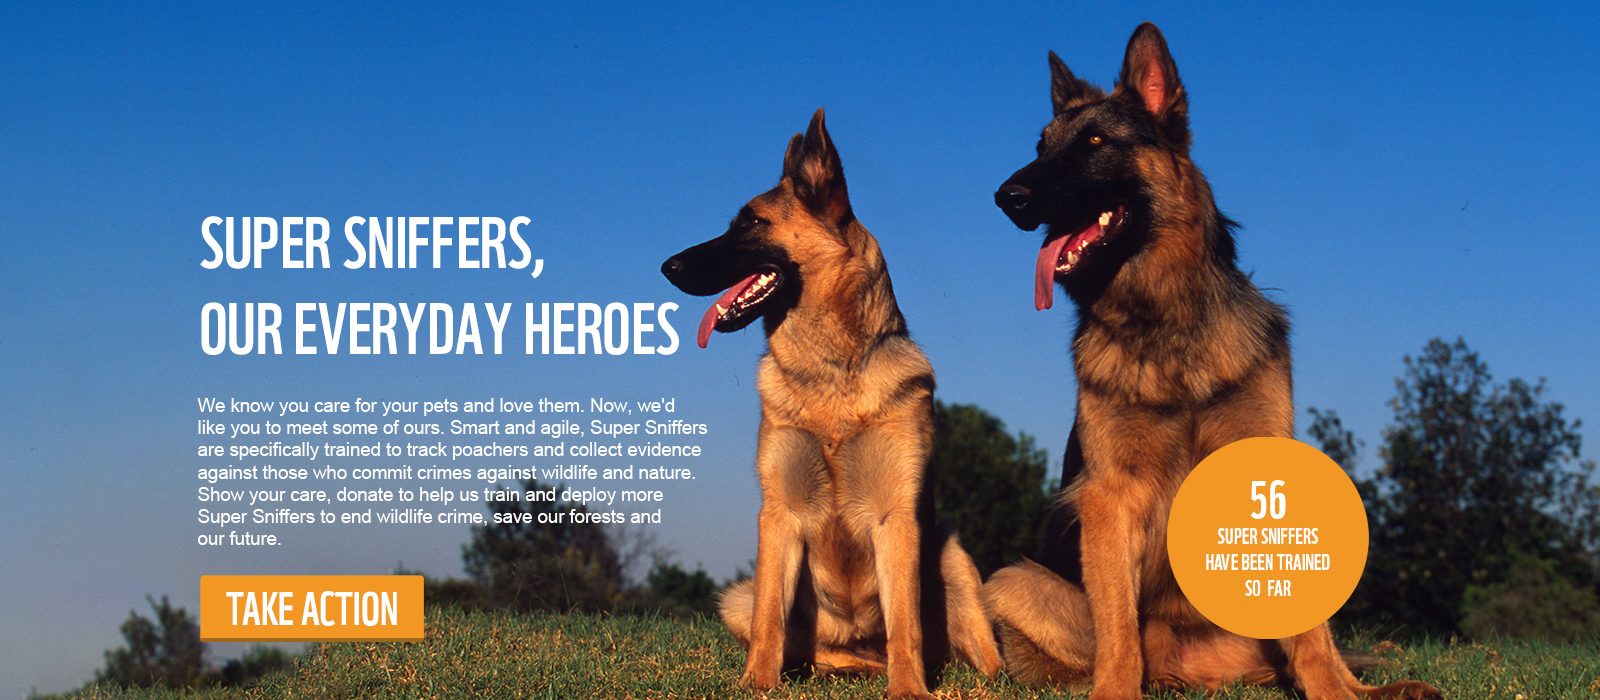 SUPER SNIFFERS OUR EVERYDAY HEROES - We know you care for your pets and love them. Now, we'd like you to meet some of ours. Smart and agile, Super Sniffers are specifically trained to track poachers and collect evidence against those who commit crimes against wildlife and nature. Show your care, donate to help us train and deploy more Super Sniffers to end wildlife crime, save our forests and our future.